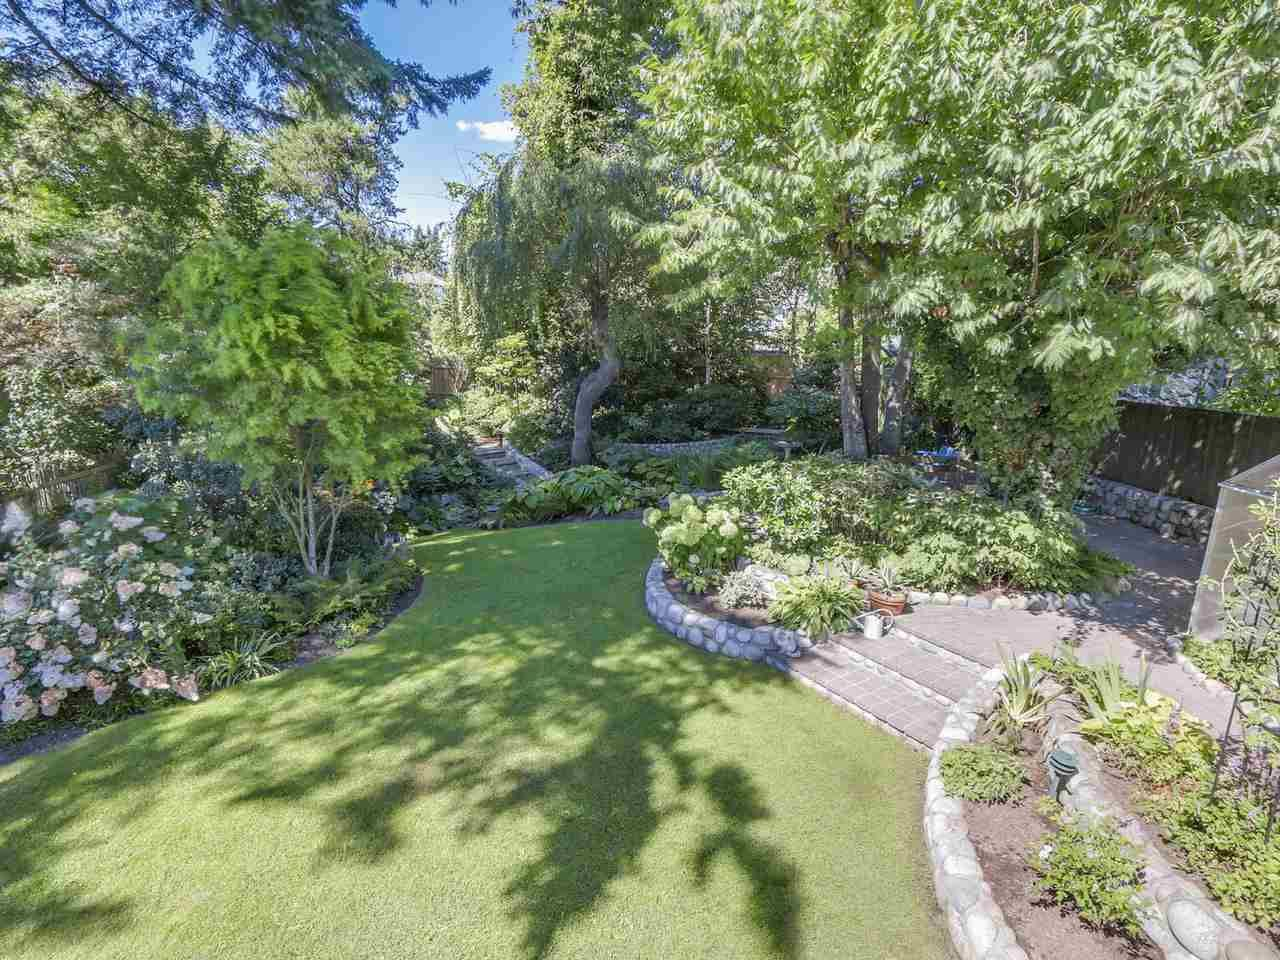 Photo 8: Photos: 587 HARRISON Avenue in Coquitlam: Coquitlam West House for sale : MLS®# R2097877